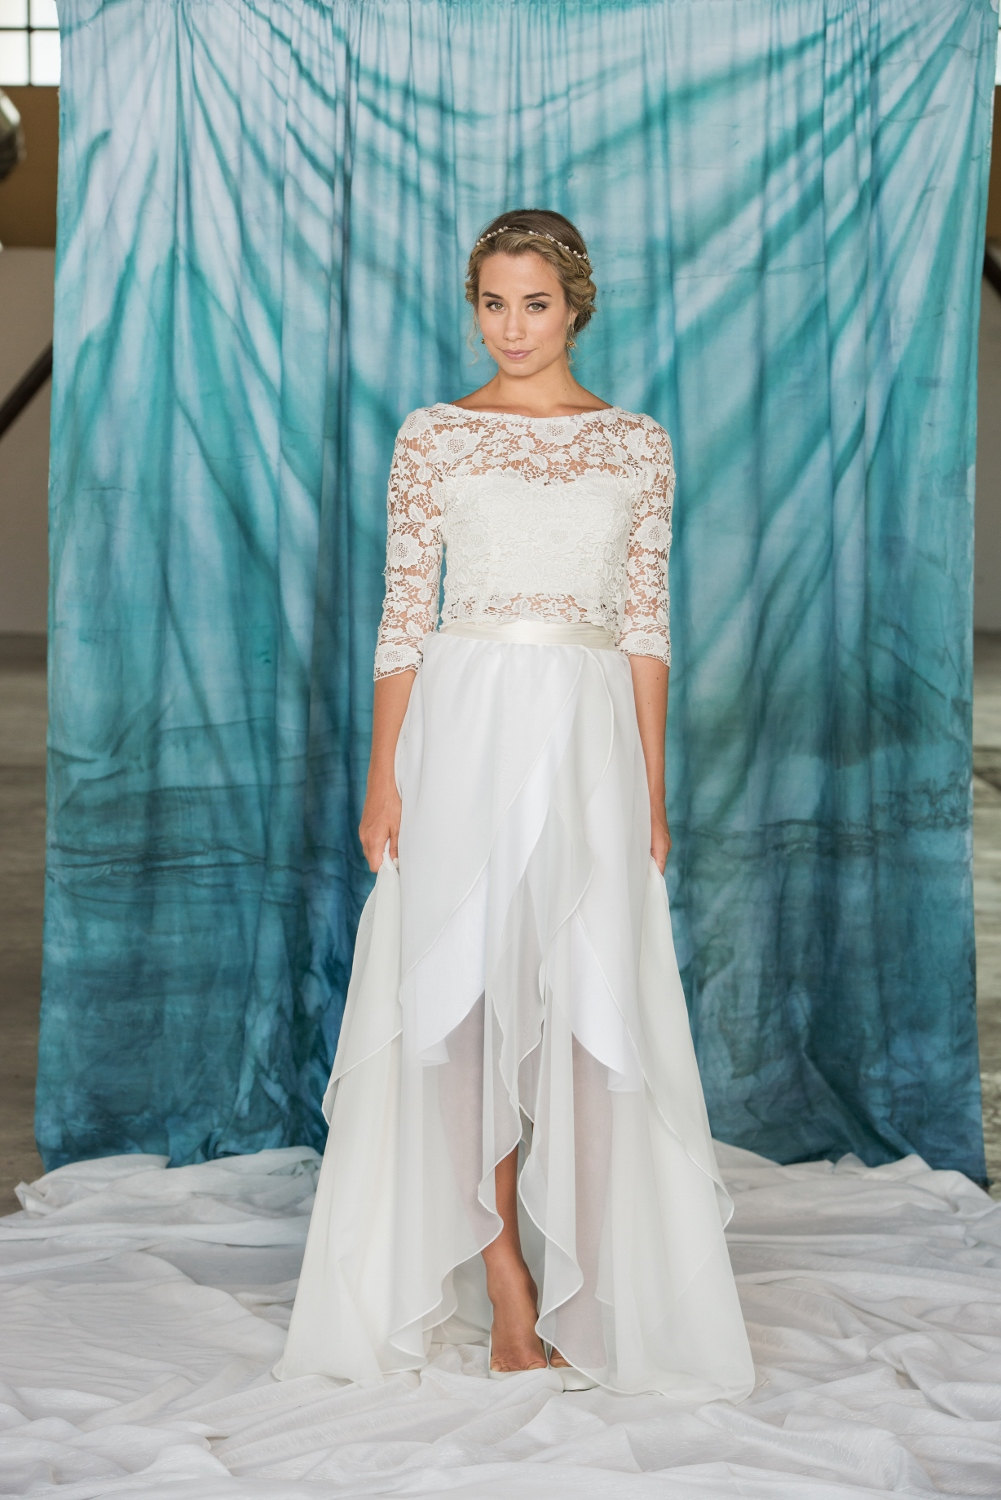 Awesome Dresses For Weddings Images - Styles & Ideas 2018 - sperr.us